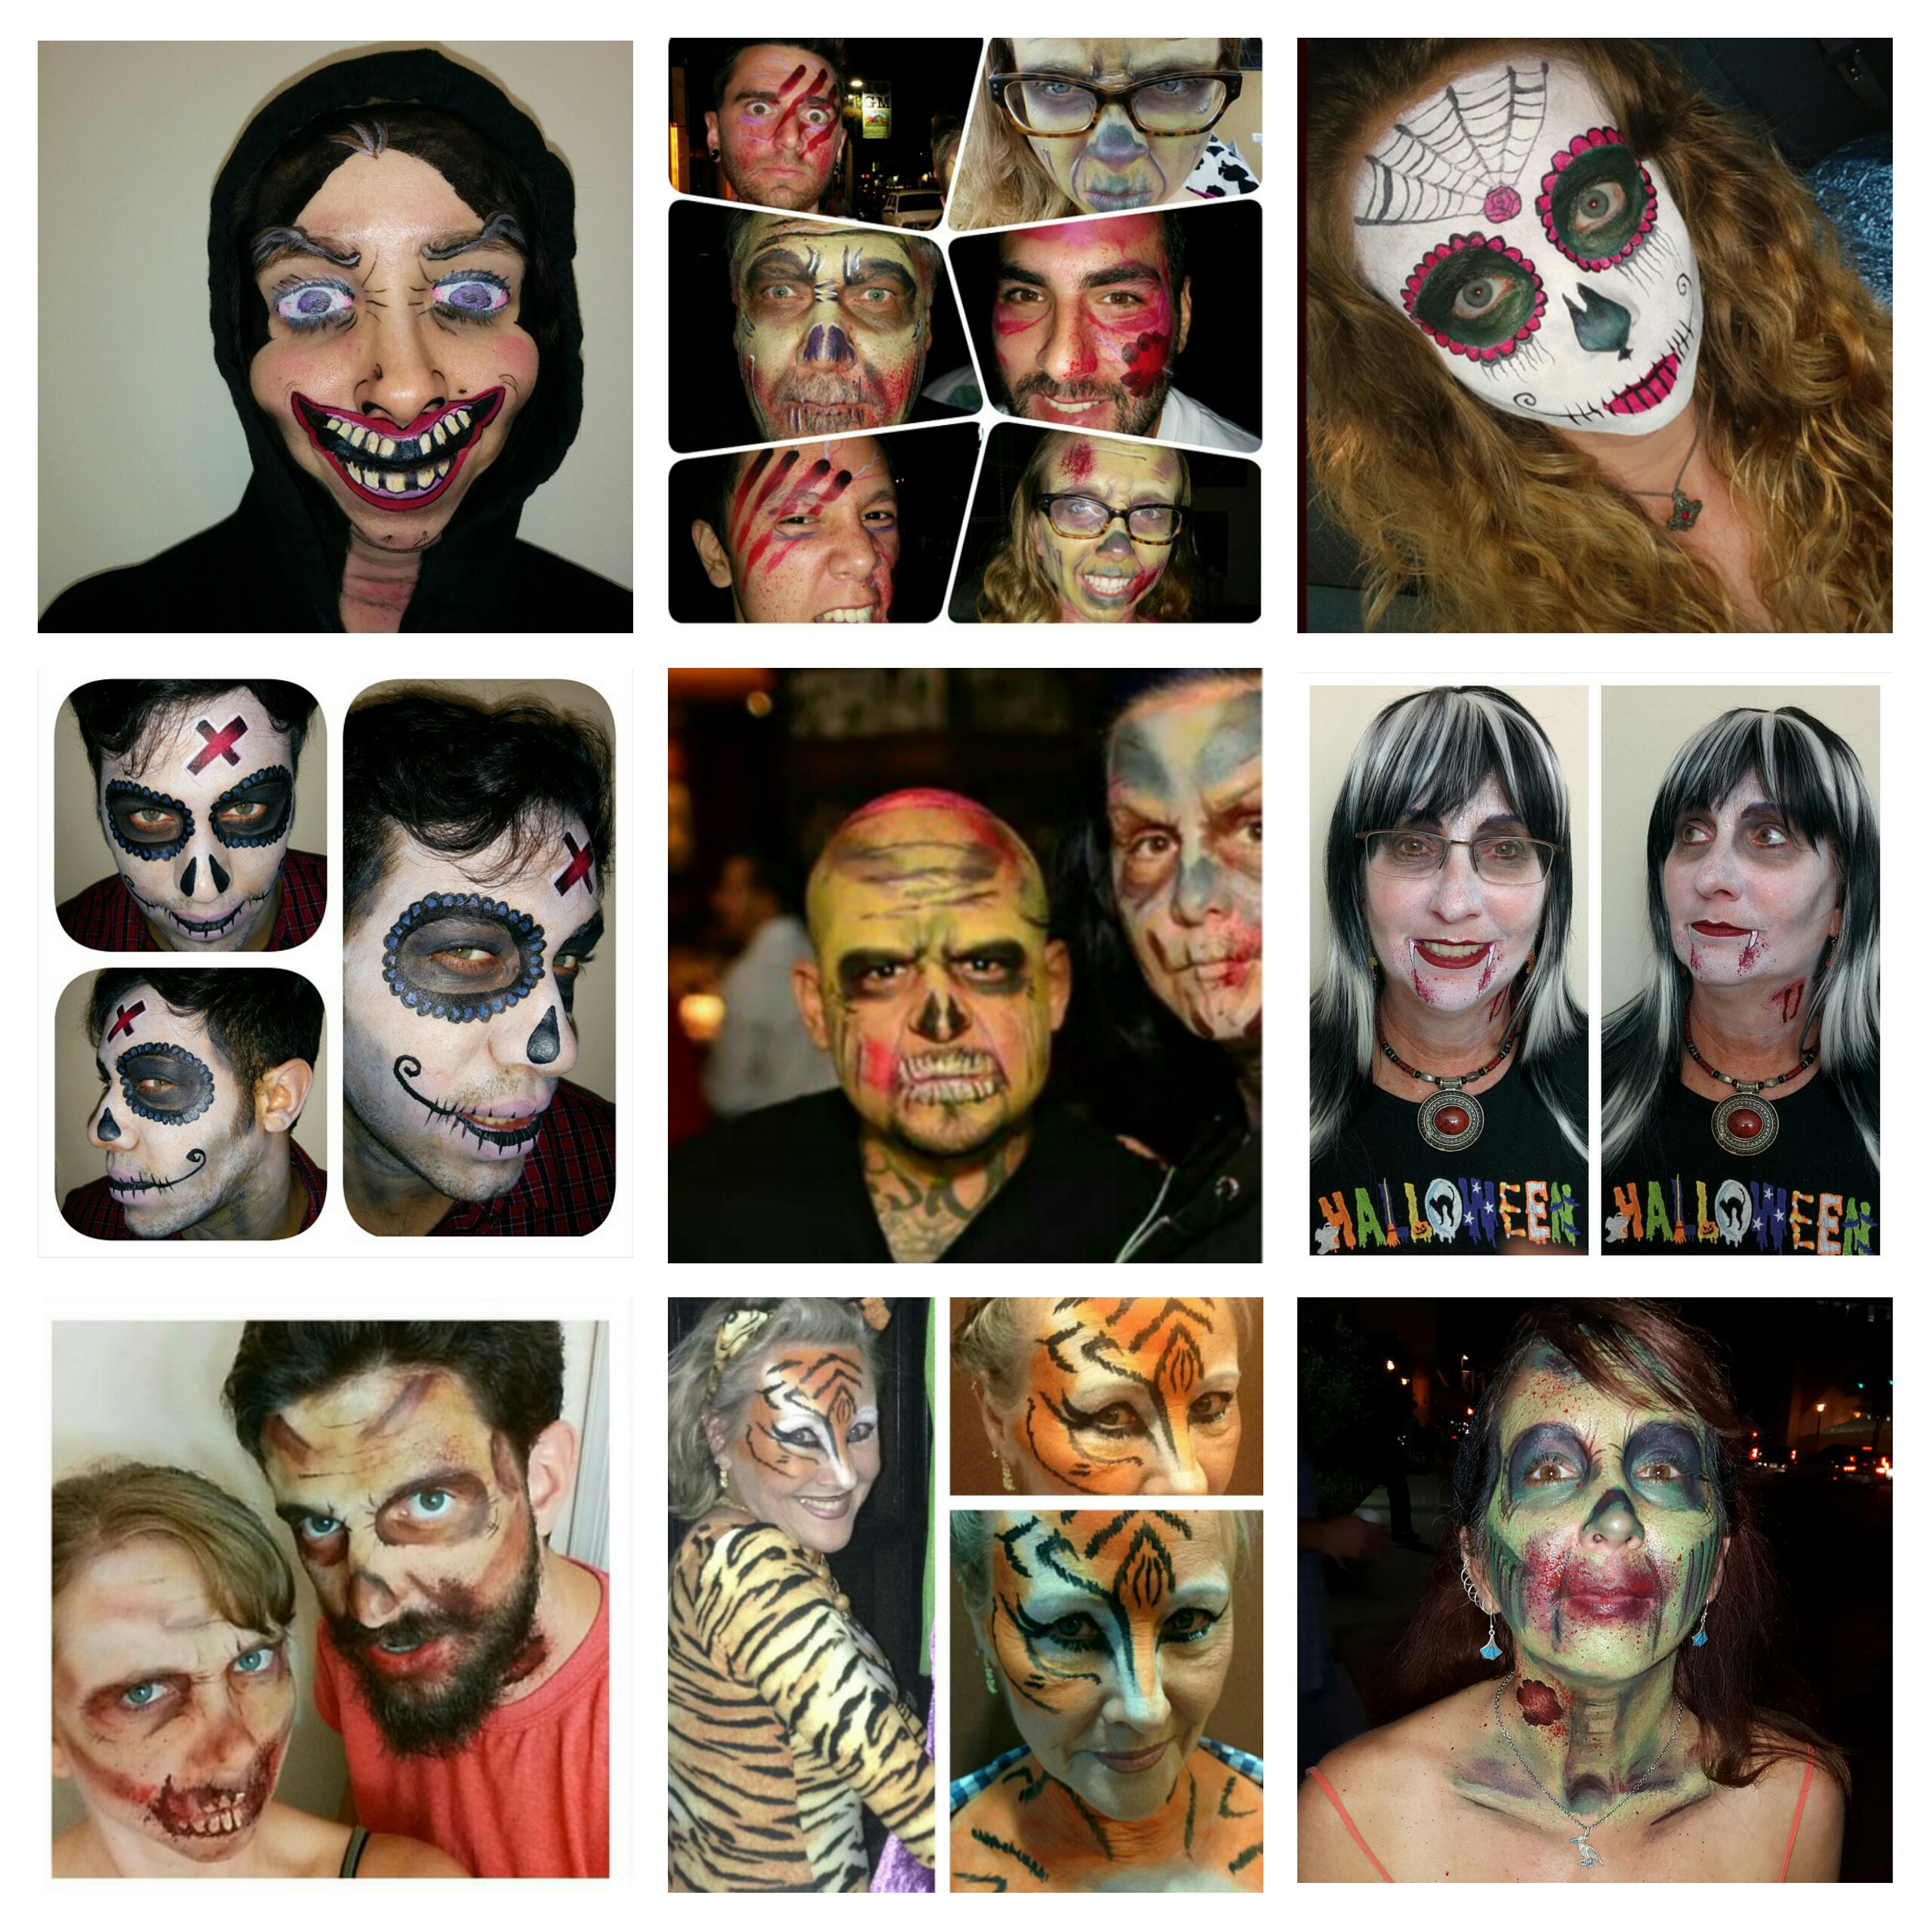 Book us for private appointments and for Halloween costume enhancements!